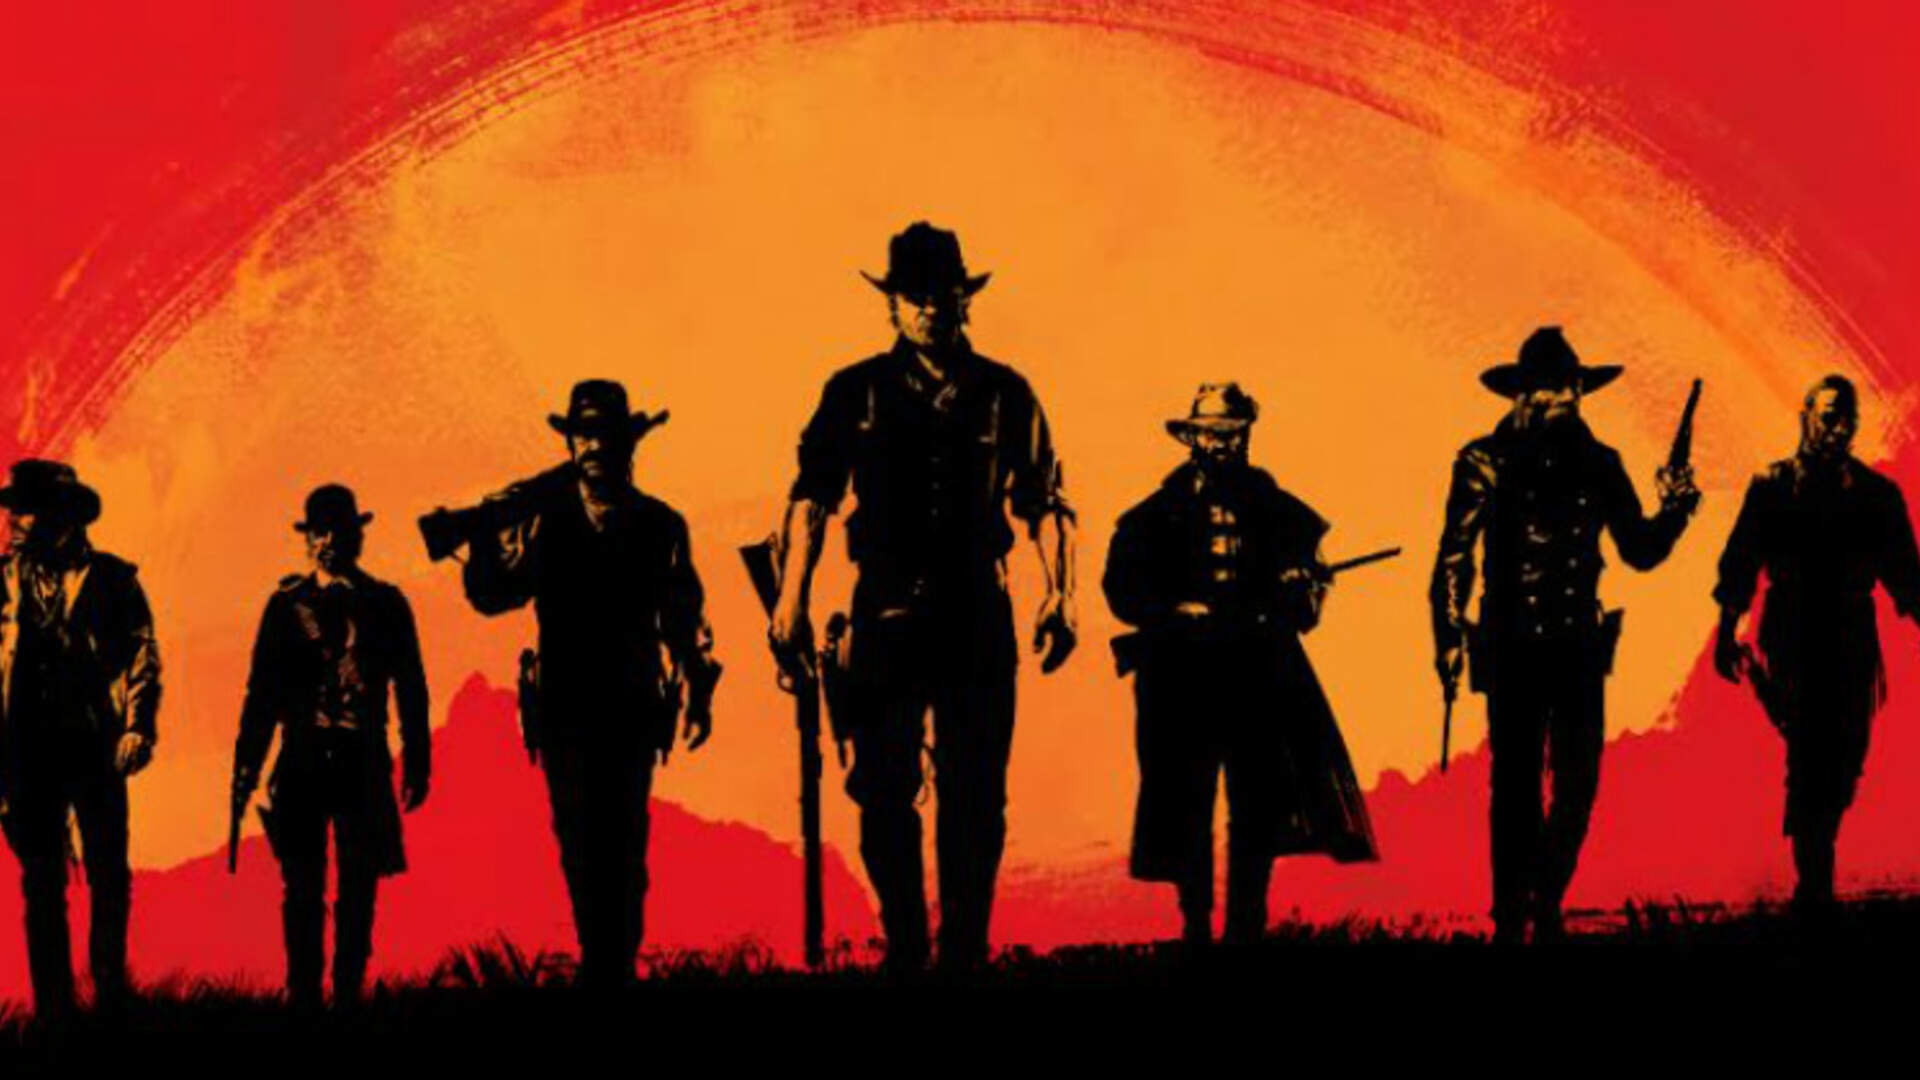 New Red Dead Redemption 2 Leaks Reveals the Full Map of the Game